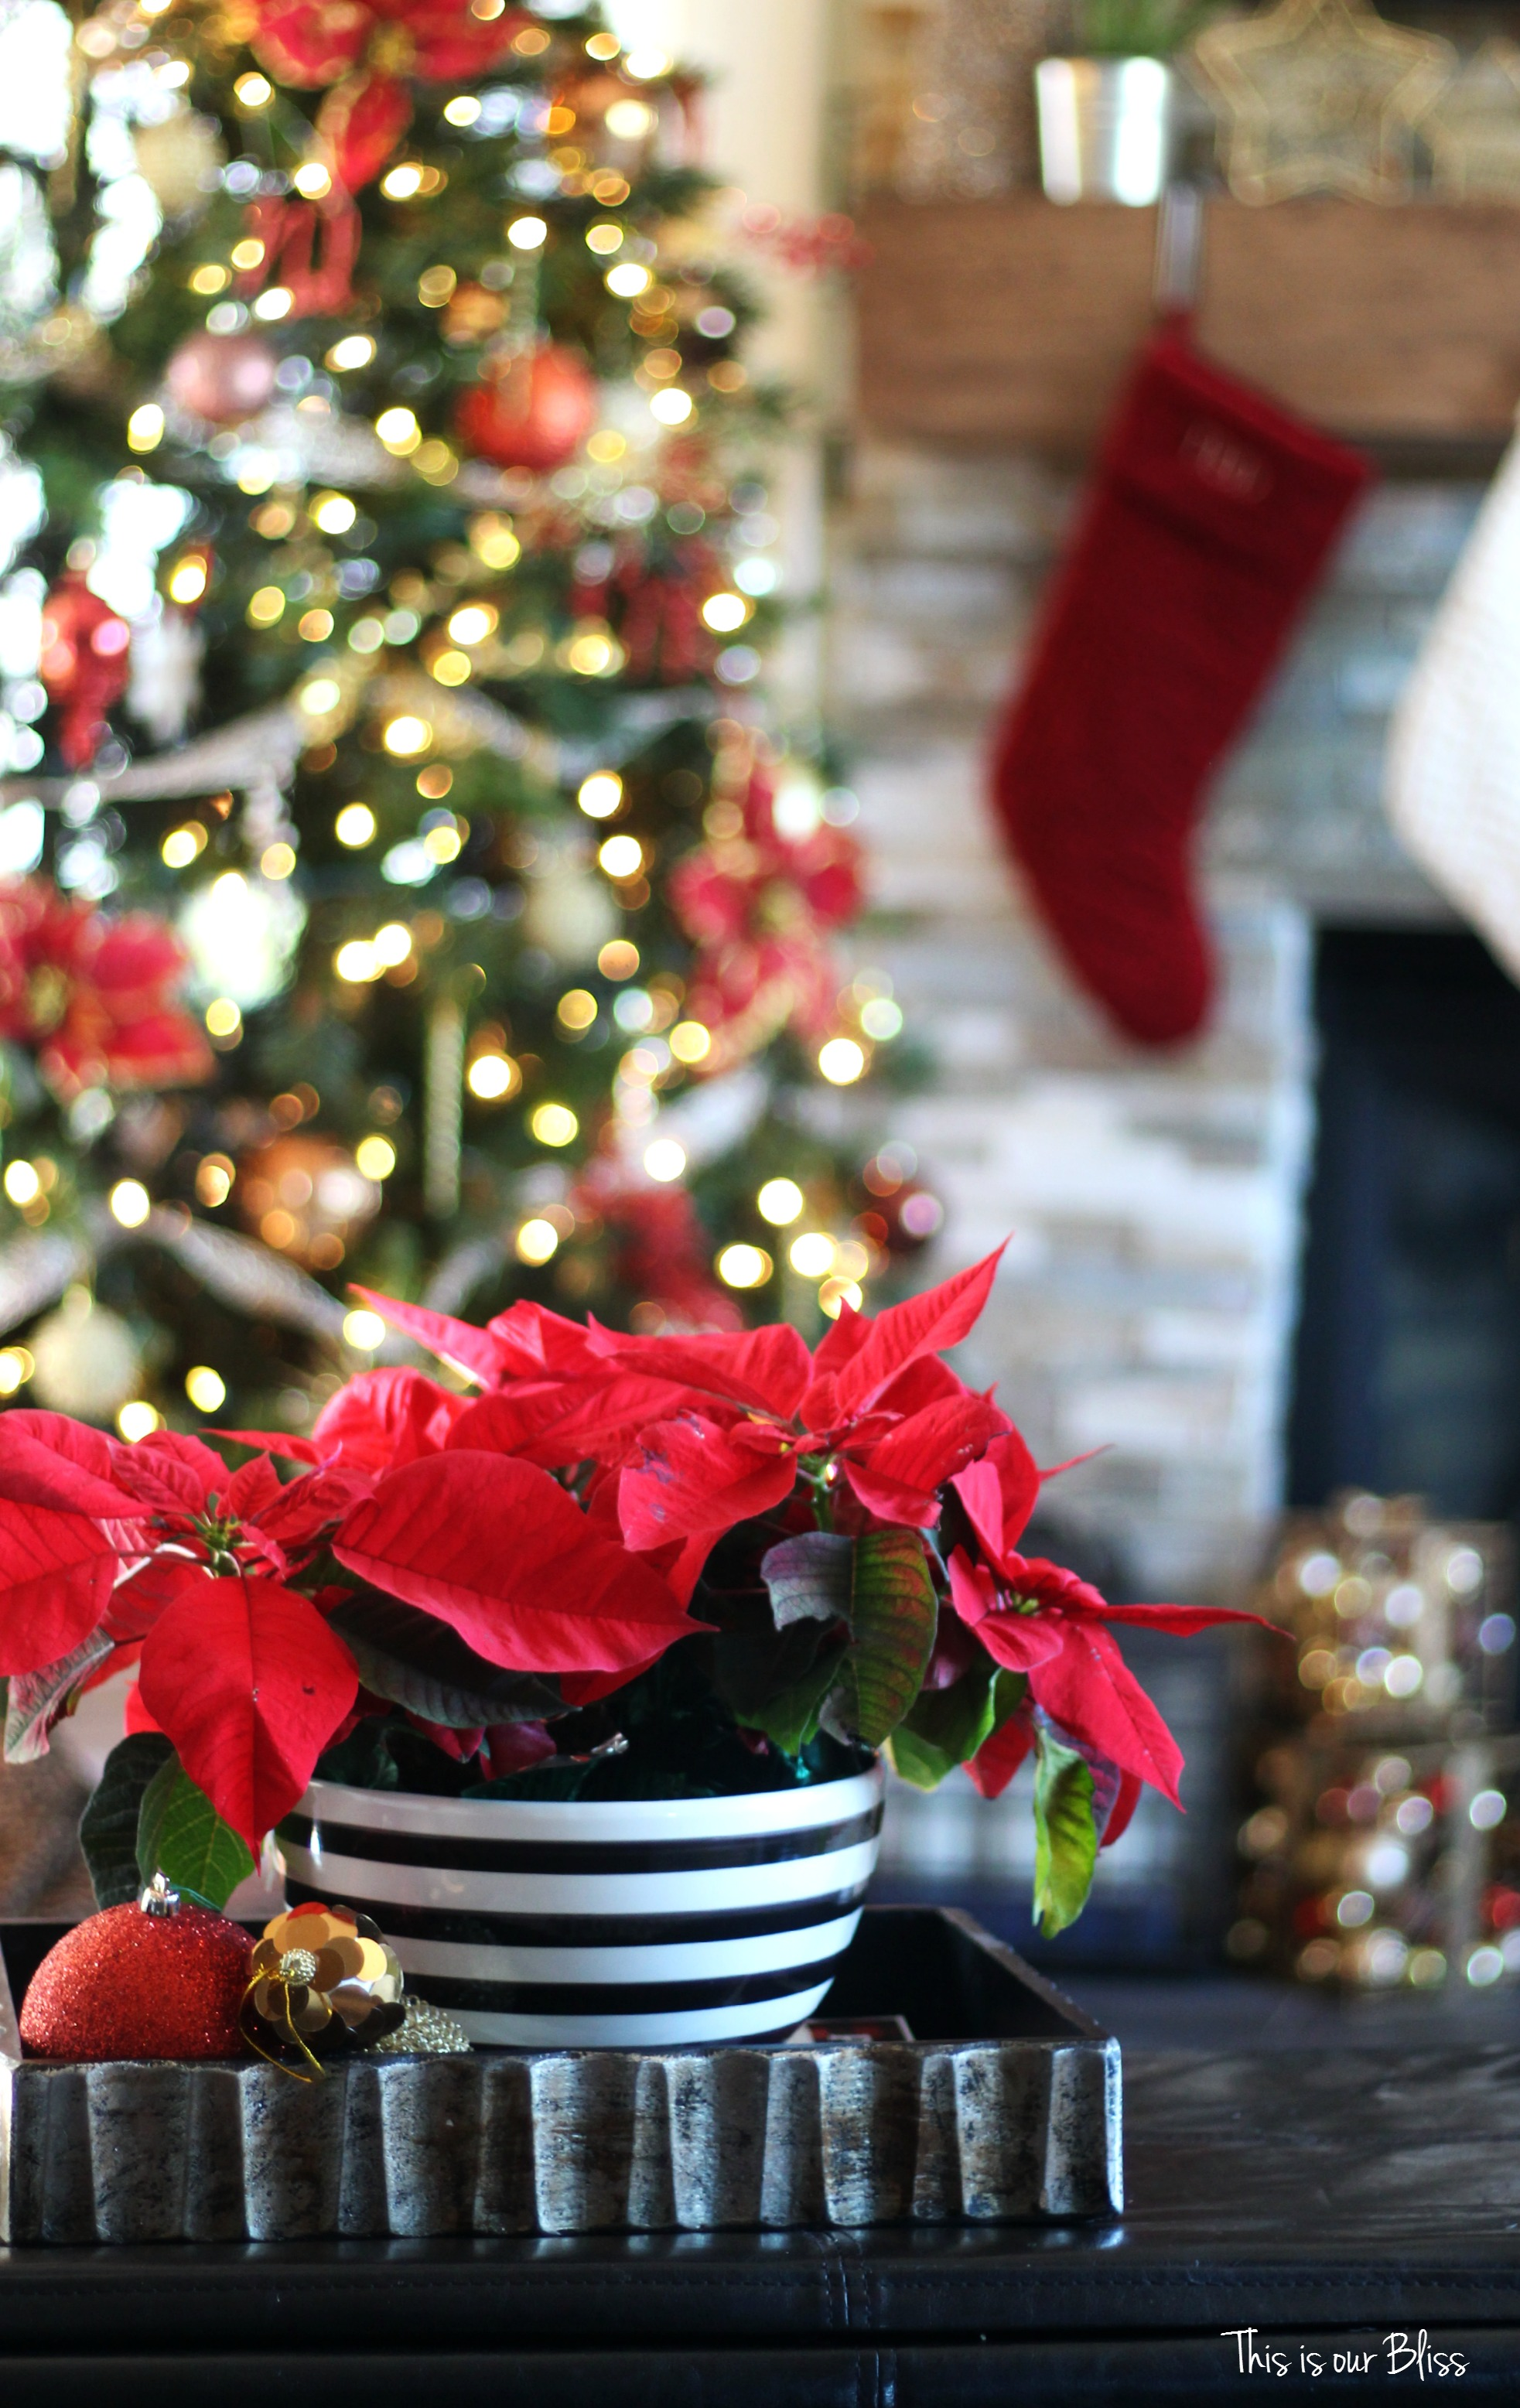 Uncategorized christmas decorations amp holiday decorations - Speaking Of Poinsettias I Did Pick Up Quite A Few Of Them This Year And Sprinkled Them Throughout The House To Add Some Christmas Red